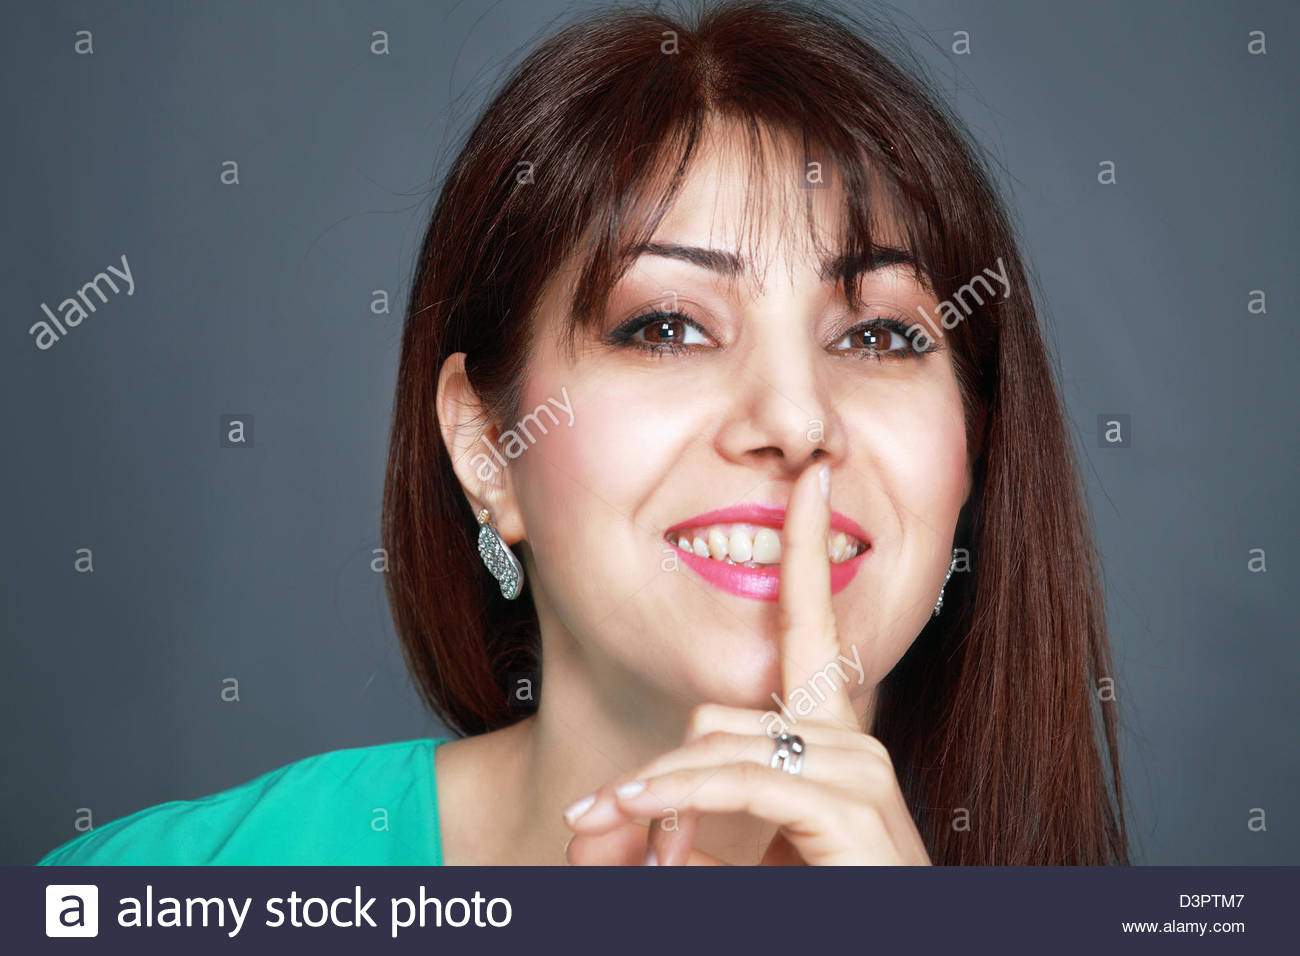 Smiling woman with finger on lips - Stock Image